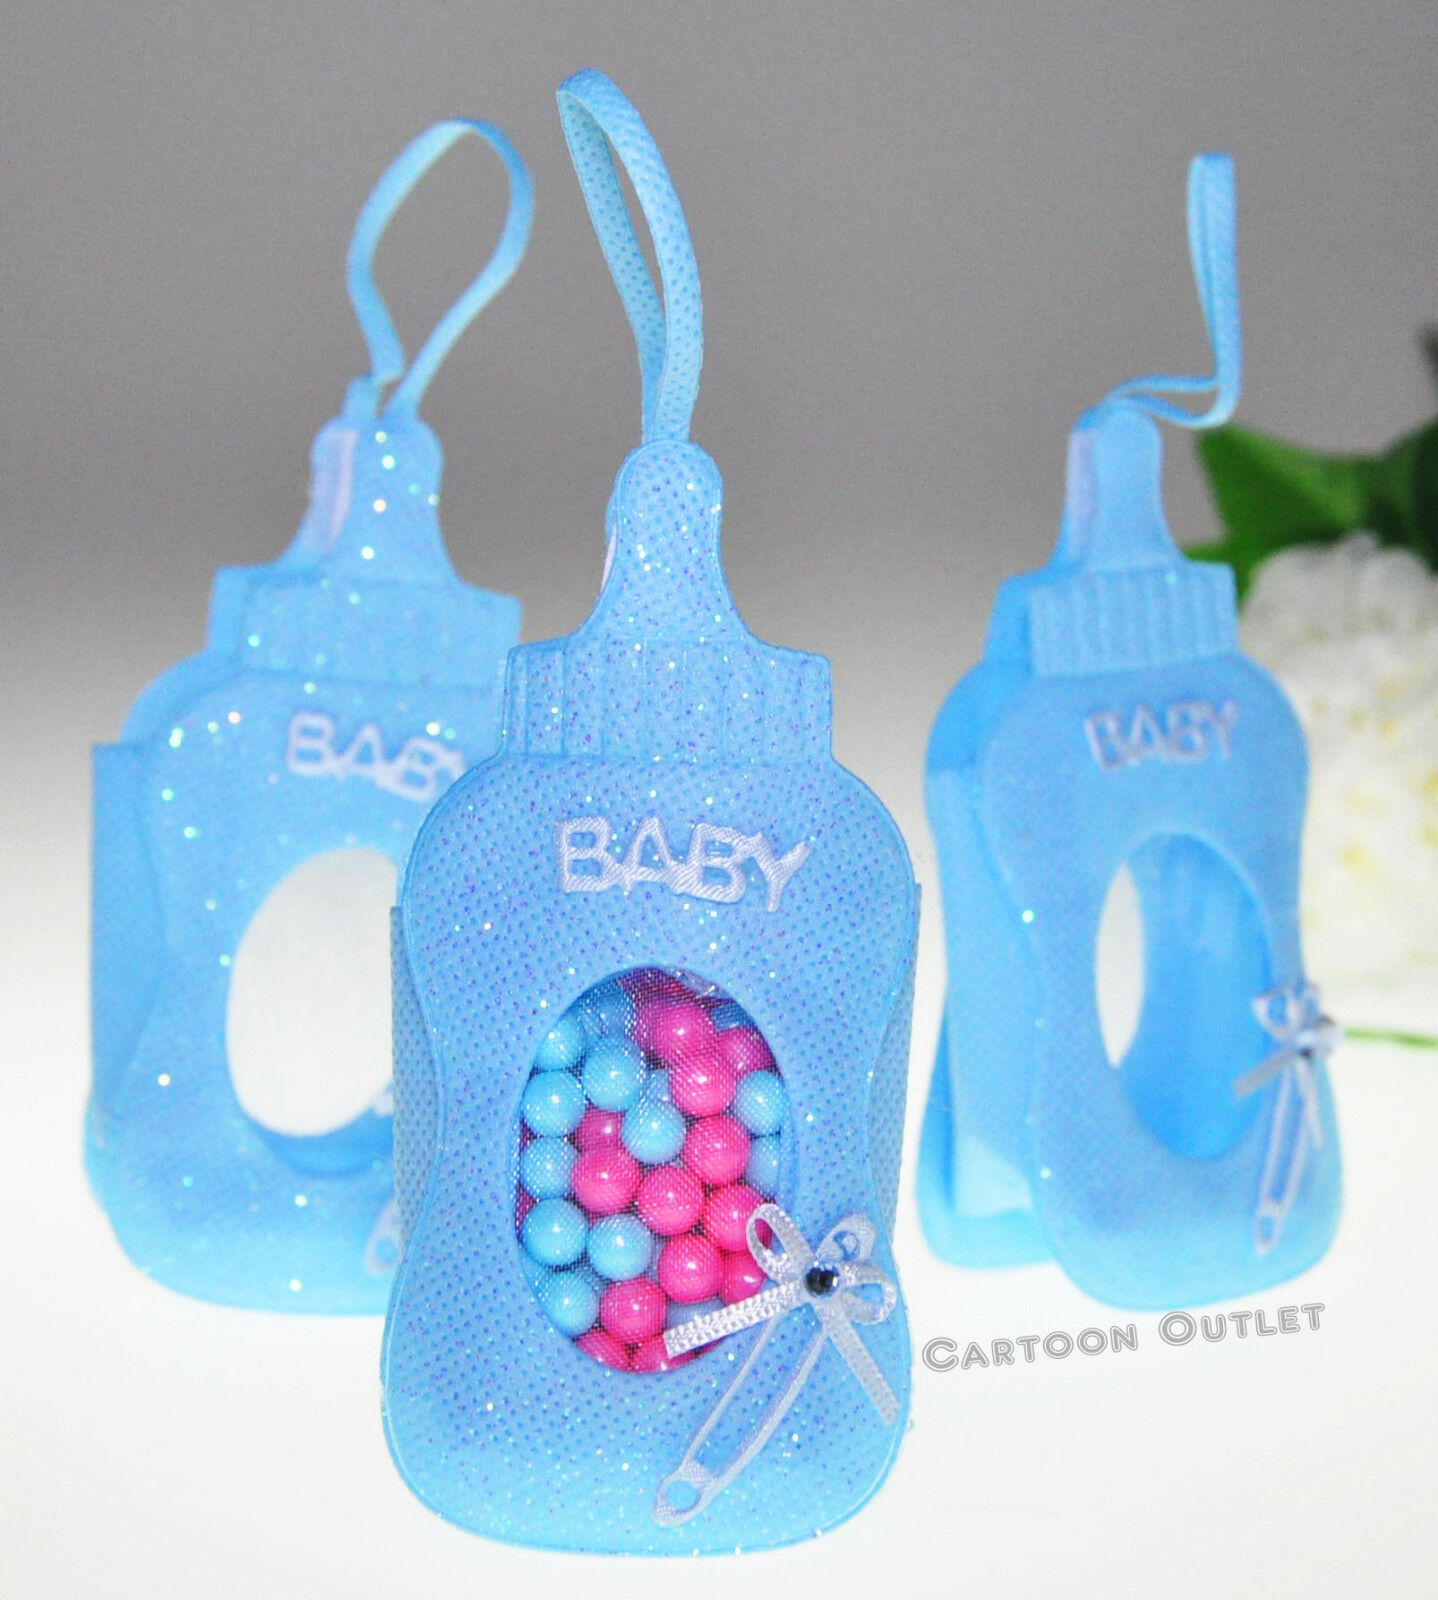 24 PC RECUERDOS BABY SHOWER FILLABLE BOTTLE POUCHES FAVORS bleu DECORATIONS BOY